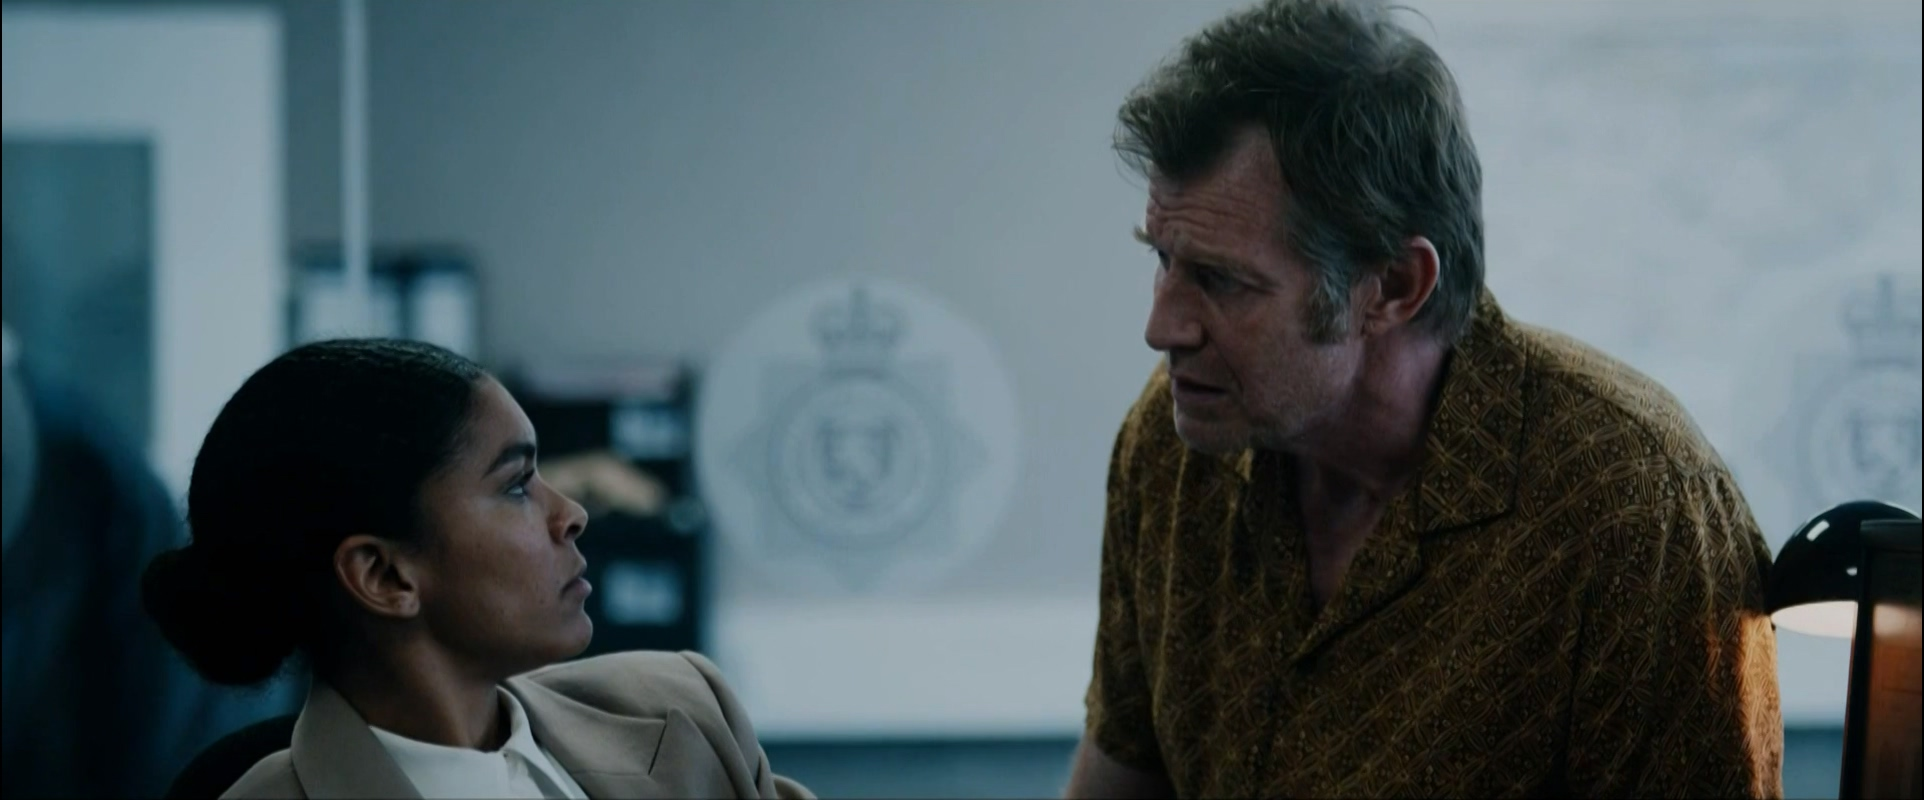 Jason Flemyng and Thalissa Teixeira in Two Weeks to Live (2020)